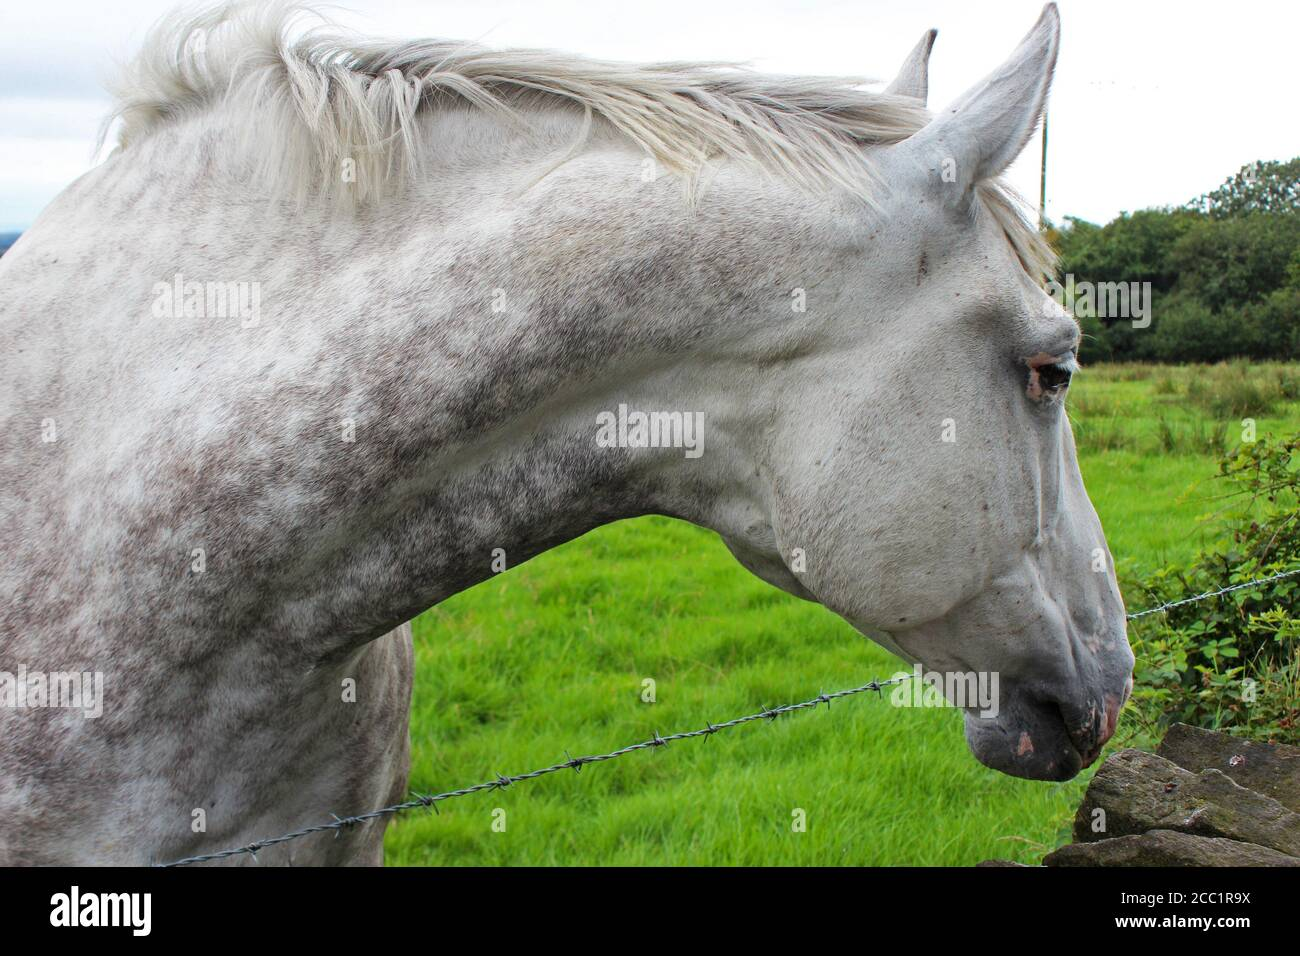 Dapple Grey Horse High Resolution Stock Photography And Images Alamy